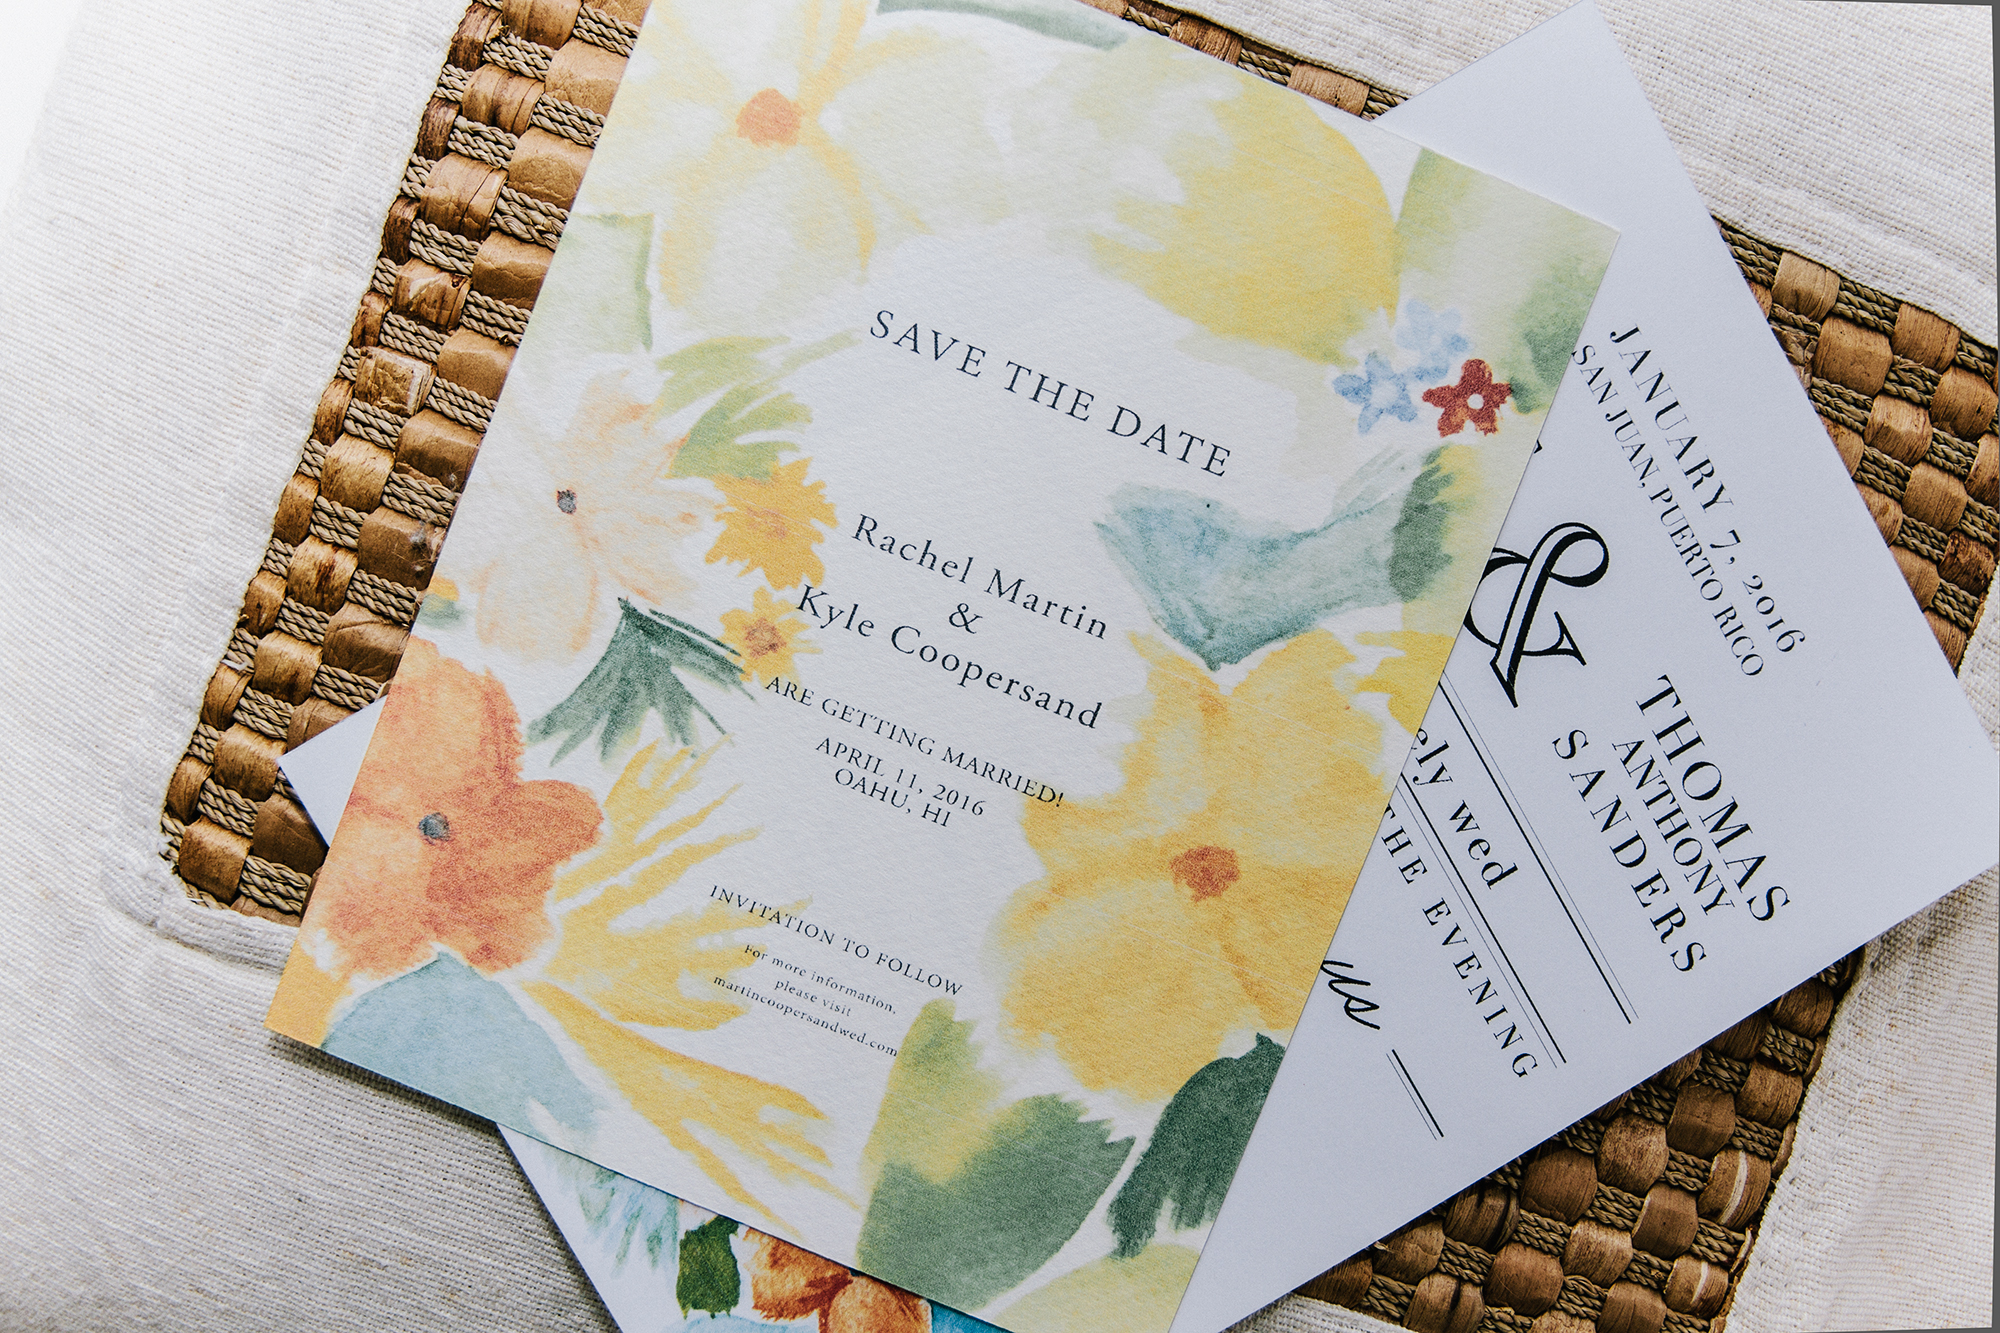 """Patricia completely captured the mood of our wedding in Oahu - bright & happy. We received many responses as to how cool the handmade paper texture feels - definitely one of a kind and rarely seen!""  - Rachel Martin-Coopersand"